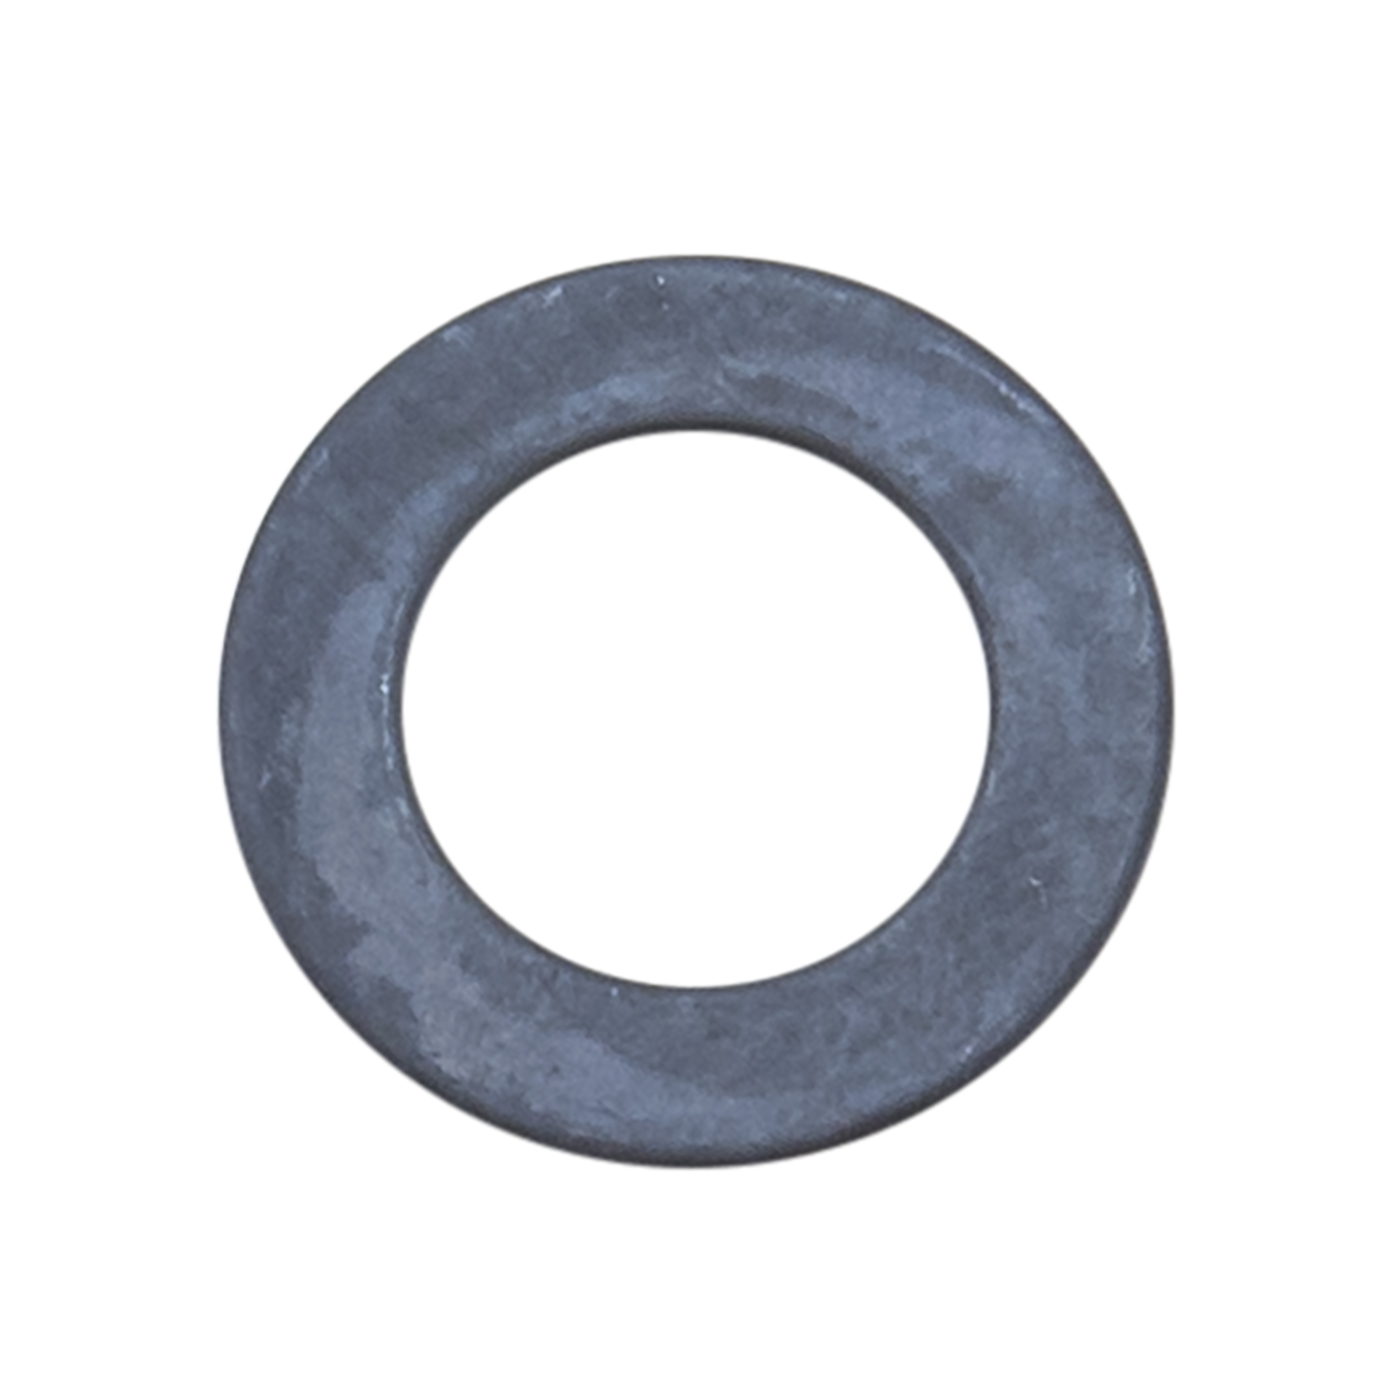 YSPBLT-068 - Trac Loc ring gear bolt washer for 8